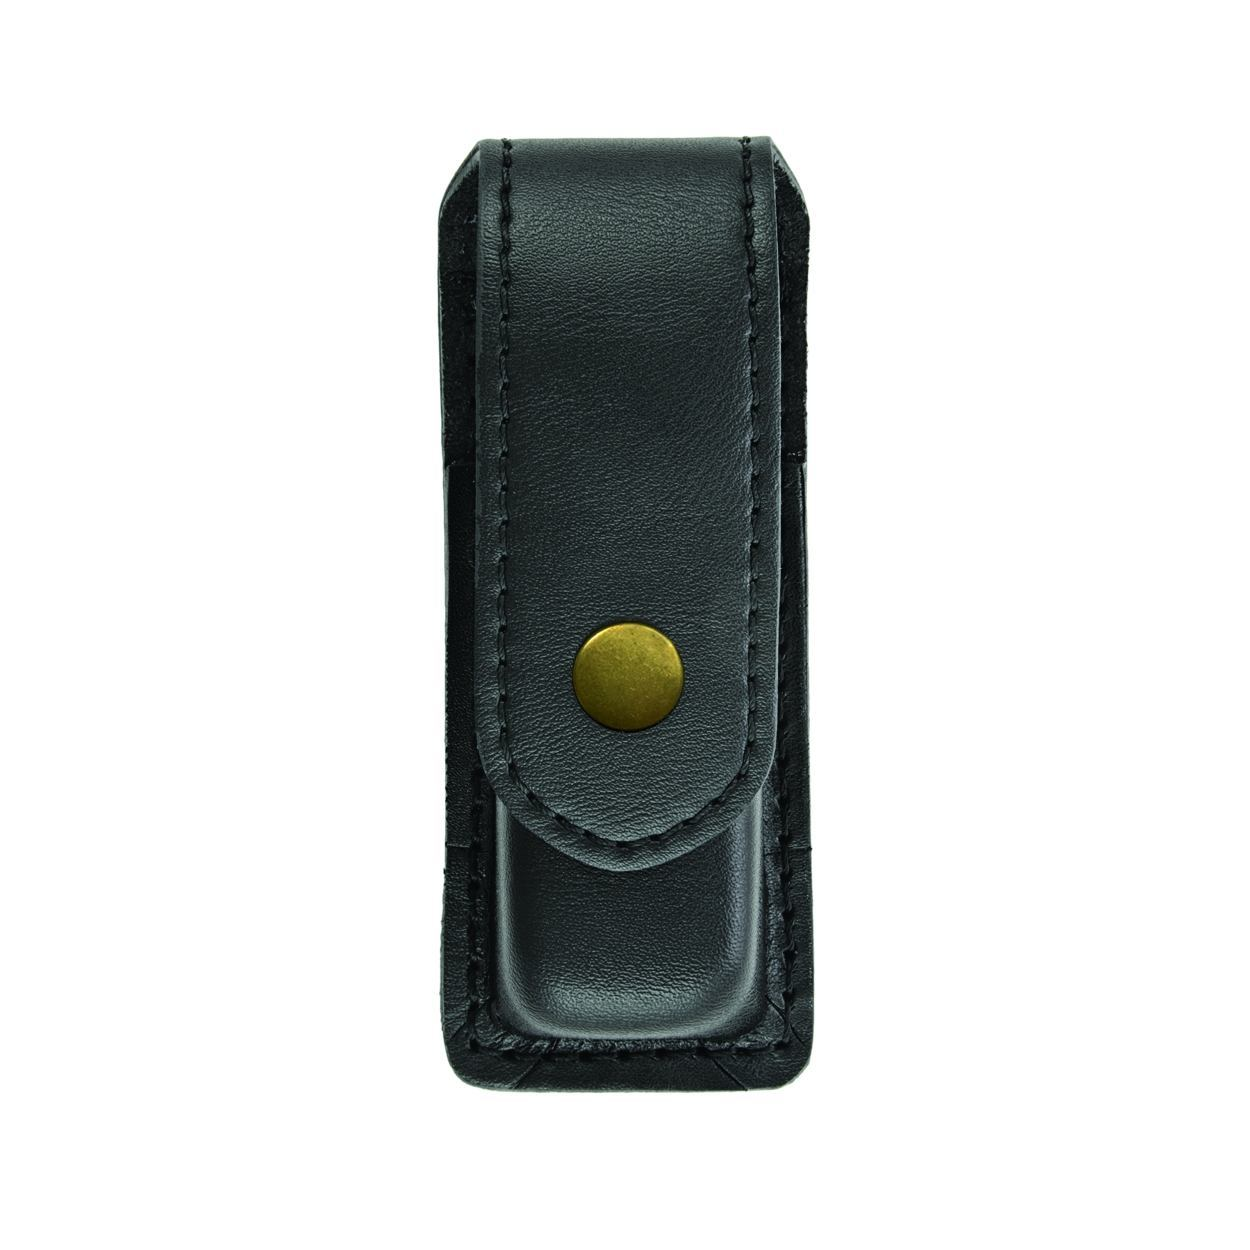 Single Magazine (or Knife) Case, Medium, AirTek, Smooth, Gold Snap-